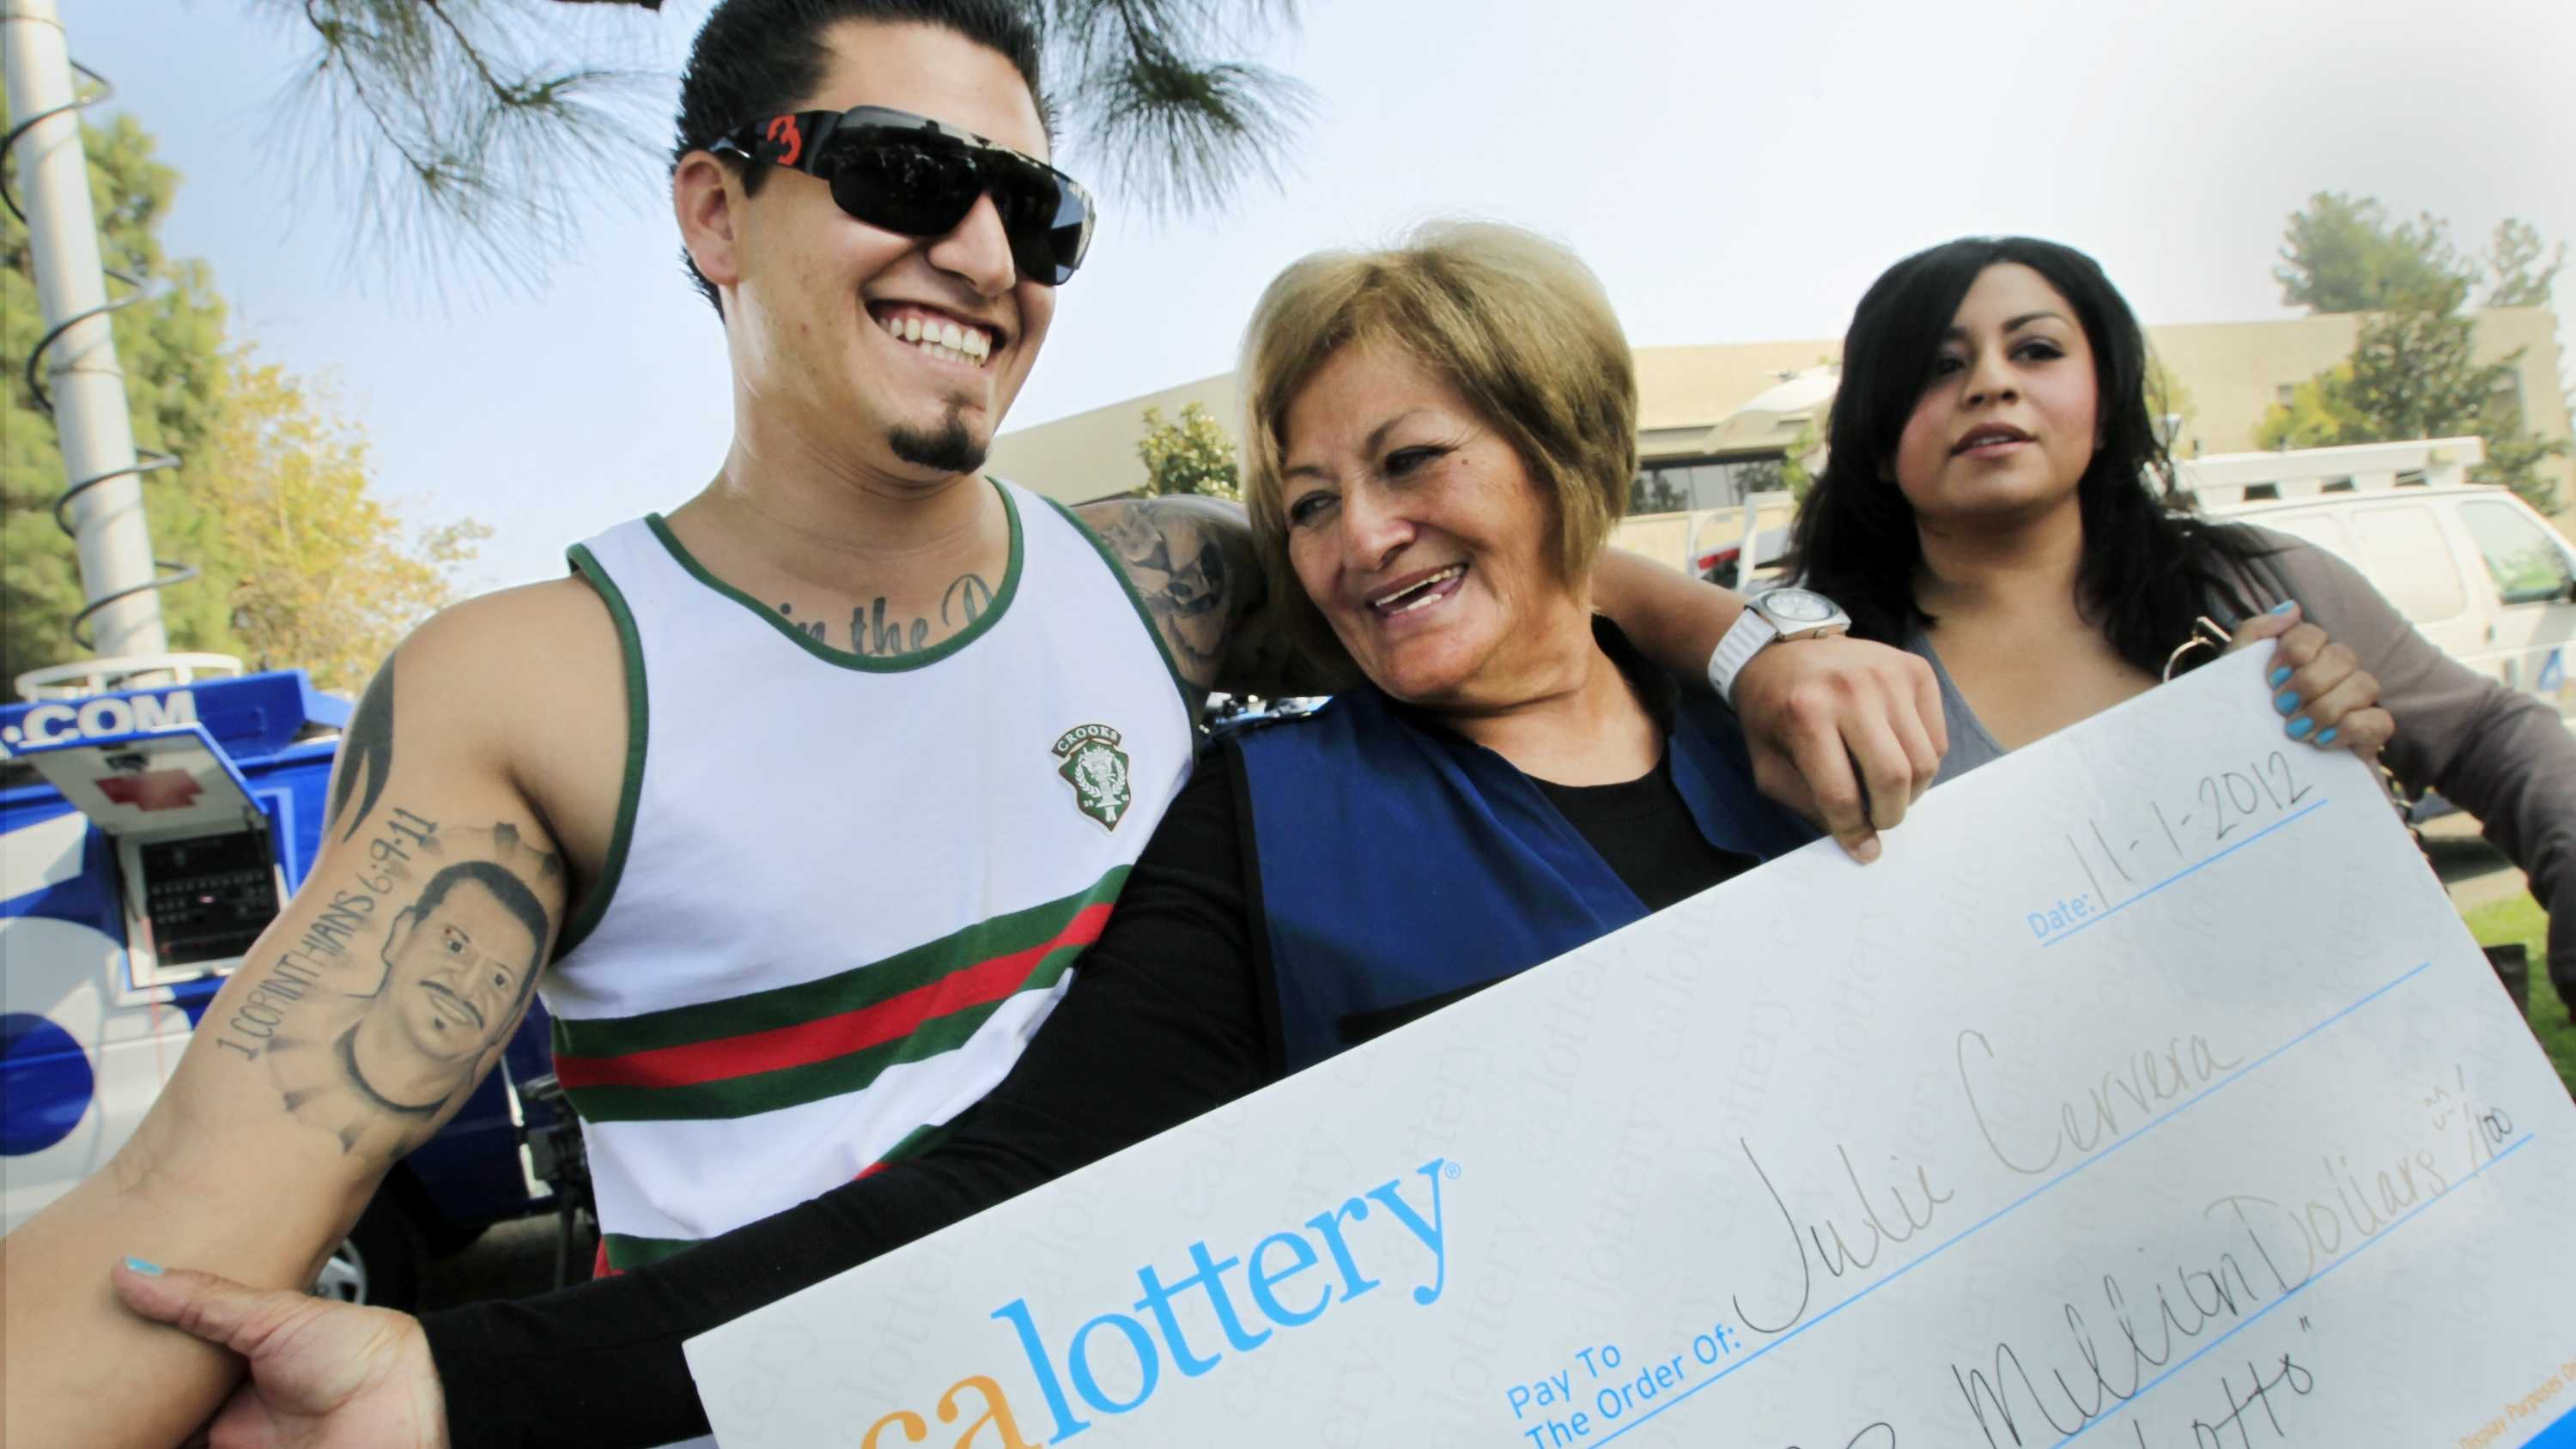 Lottery winner Julie Cervera, center, looks at her recently dead son pictured on a tattoo, as she is hugged by her grandson Rudy Ray, left, and daughter Charliena Marquez, right. The 69-year-old California grandmother came forward to claim a $23 million lottery jackpot after the winning ticket languished in her car's glove compartment for months and almost expired.